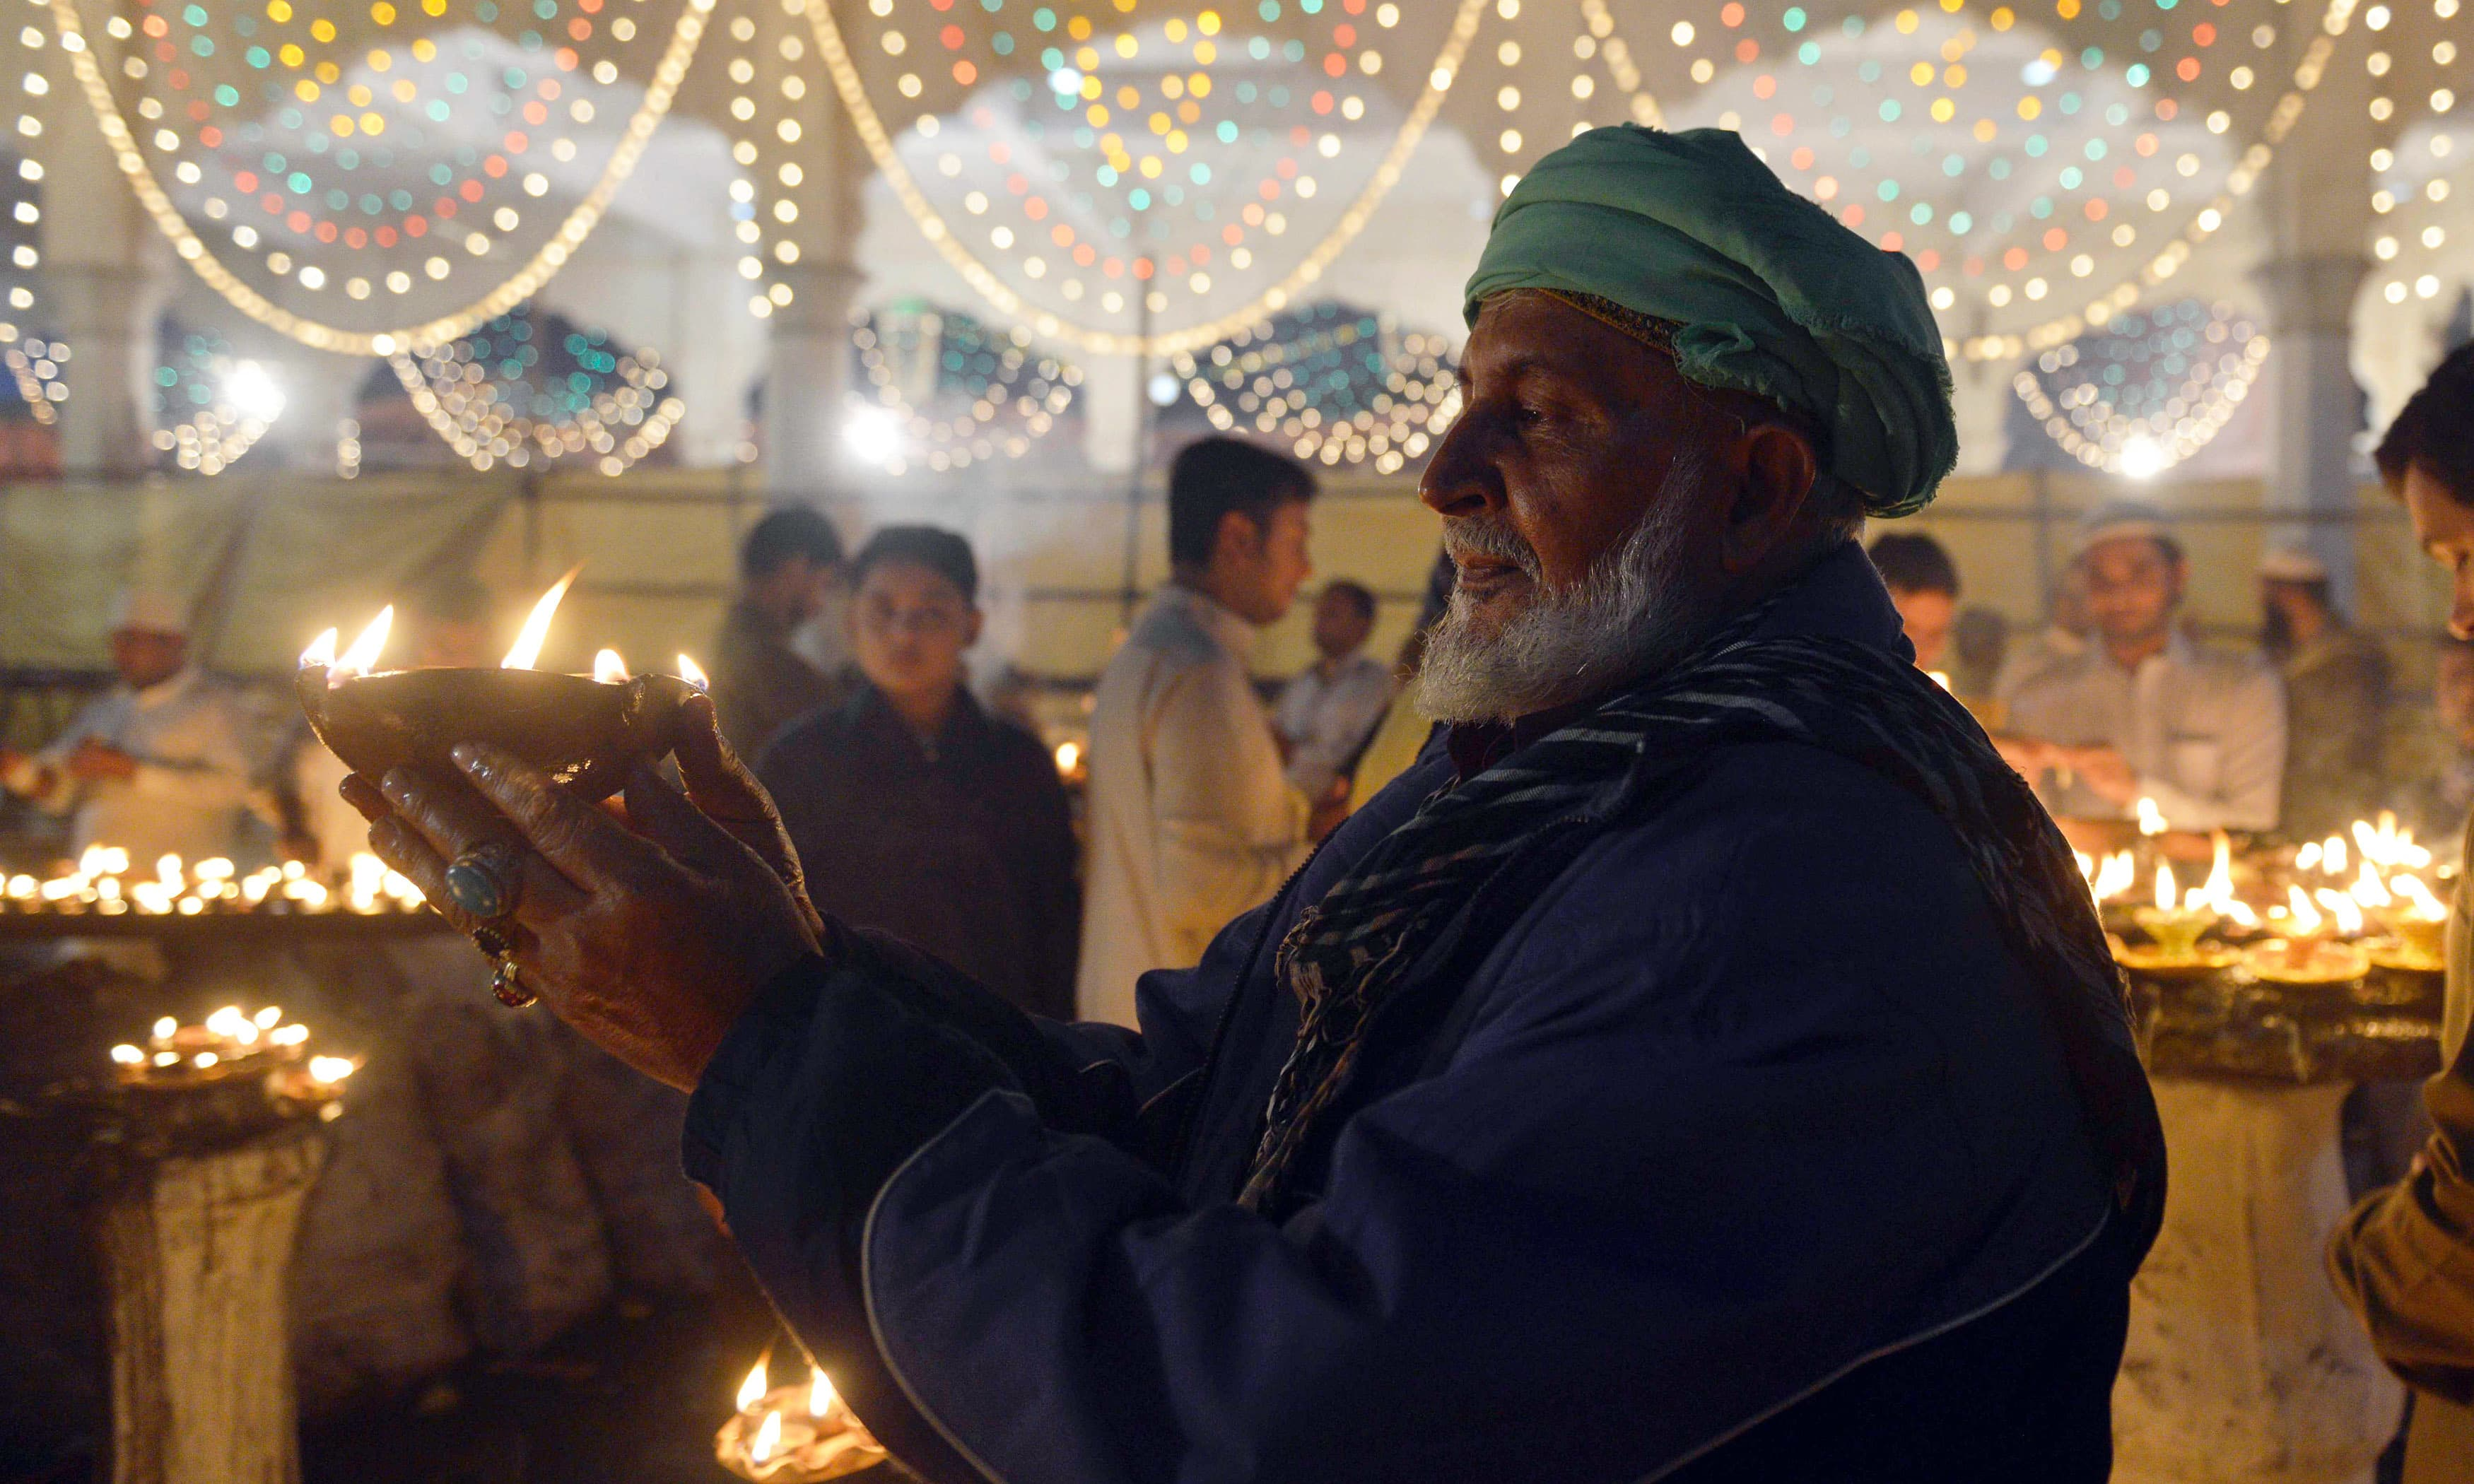 Sufi followers light incense and candles at shrine of Saint Syed Ali bin Osman Al-Hajvery, popularly known as Data Ganj Bakhsh, during the three-day annual 'Urs'.─AFP